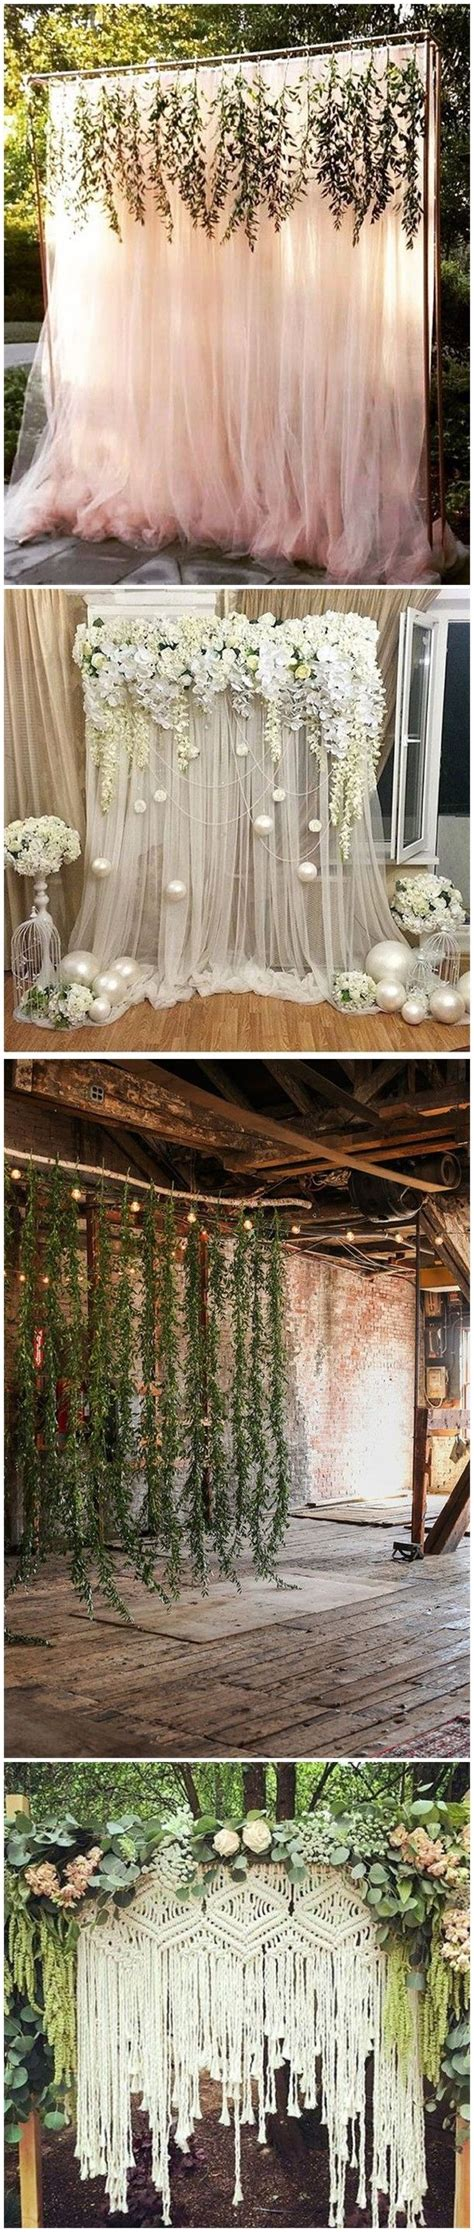 backdrop ideas 30 unique and breathtaking wedding backdrop ideas